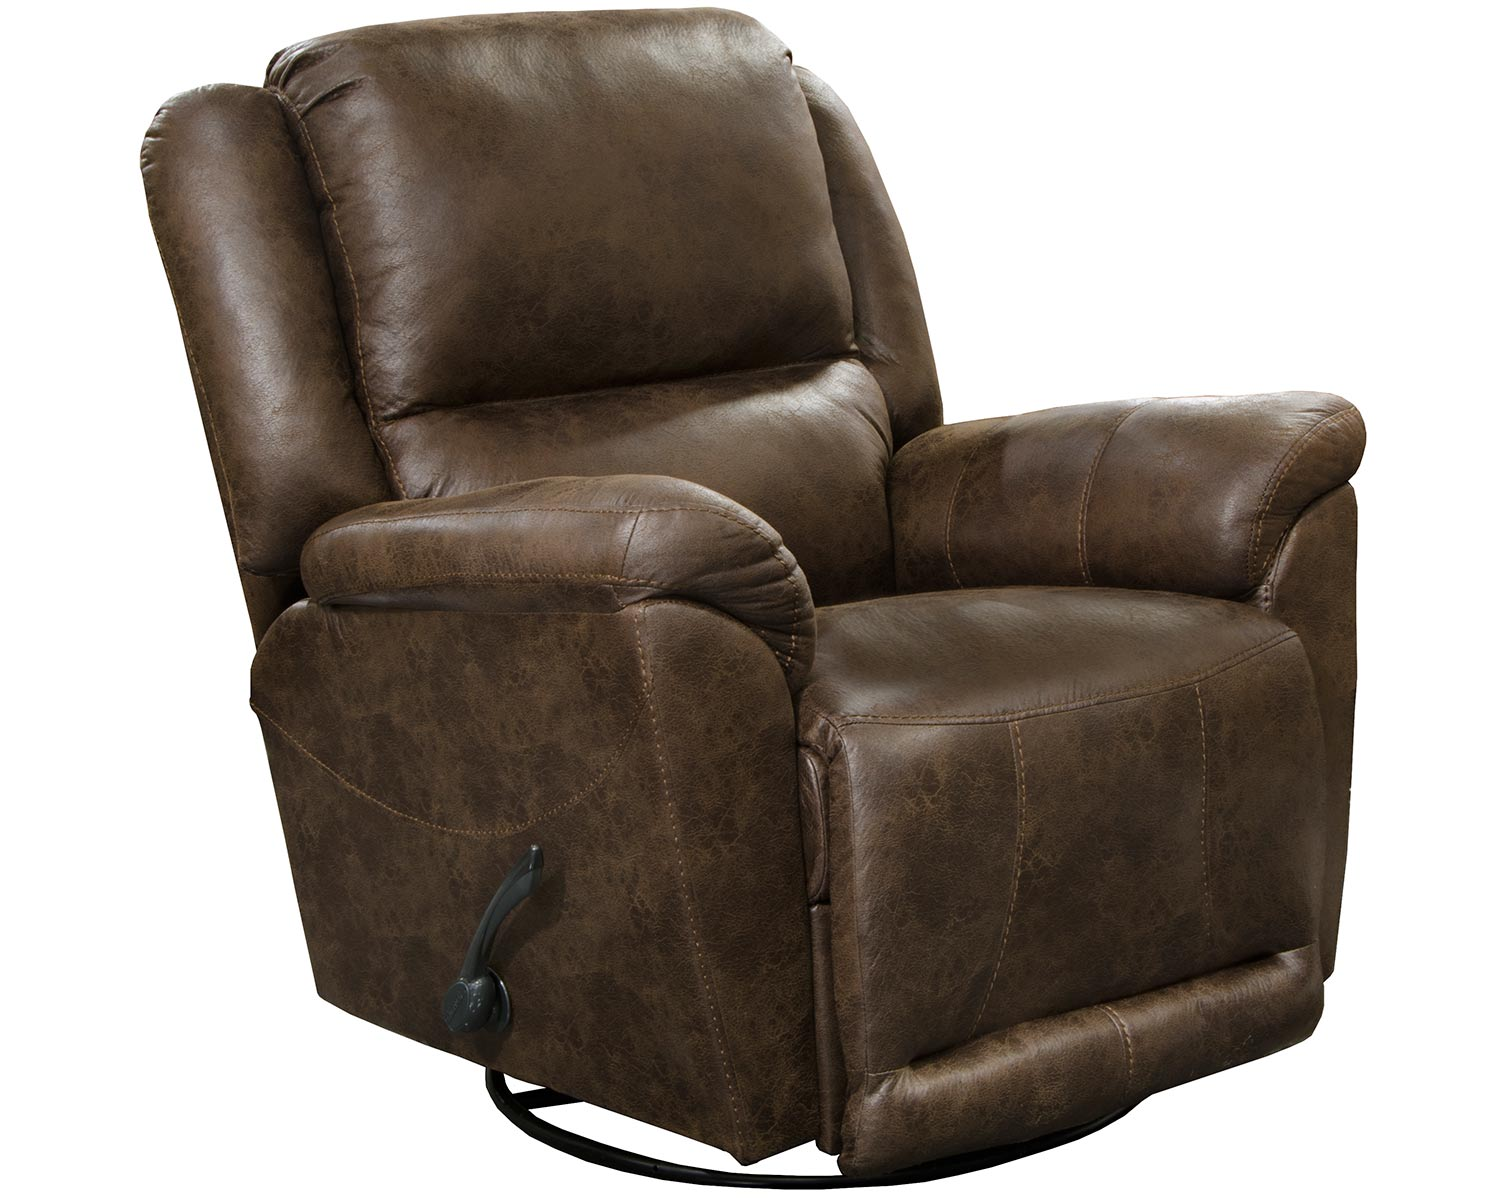 CatNapper Cole Recliner Chair - Mink